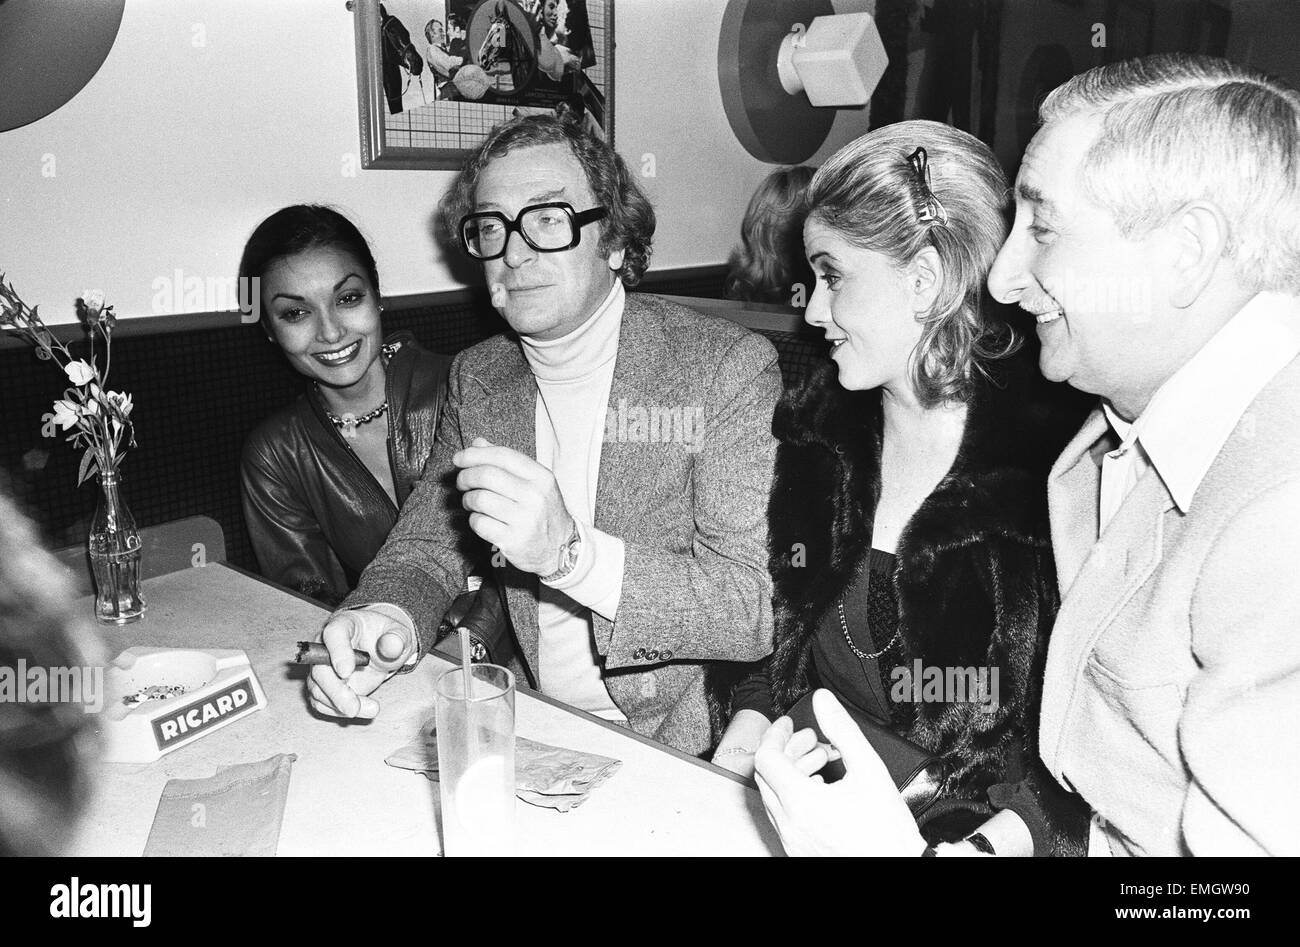 Actor Michael Caine with his wife Shakira photographed at boxer John Conteh's club in London. 16th December - Stock Image